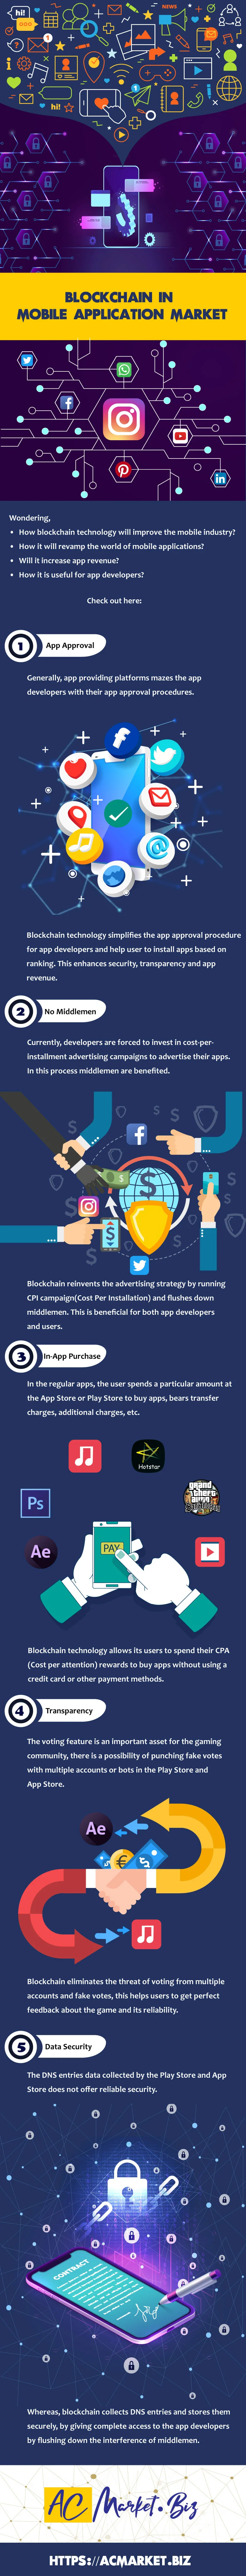 Blockchain In Mobile Application Market - Infographic